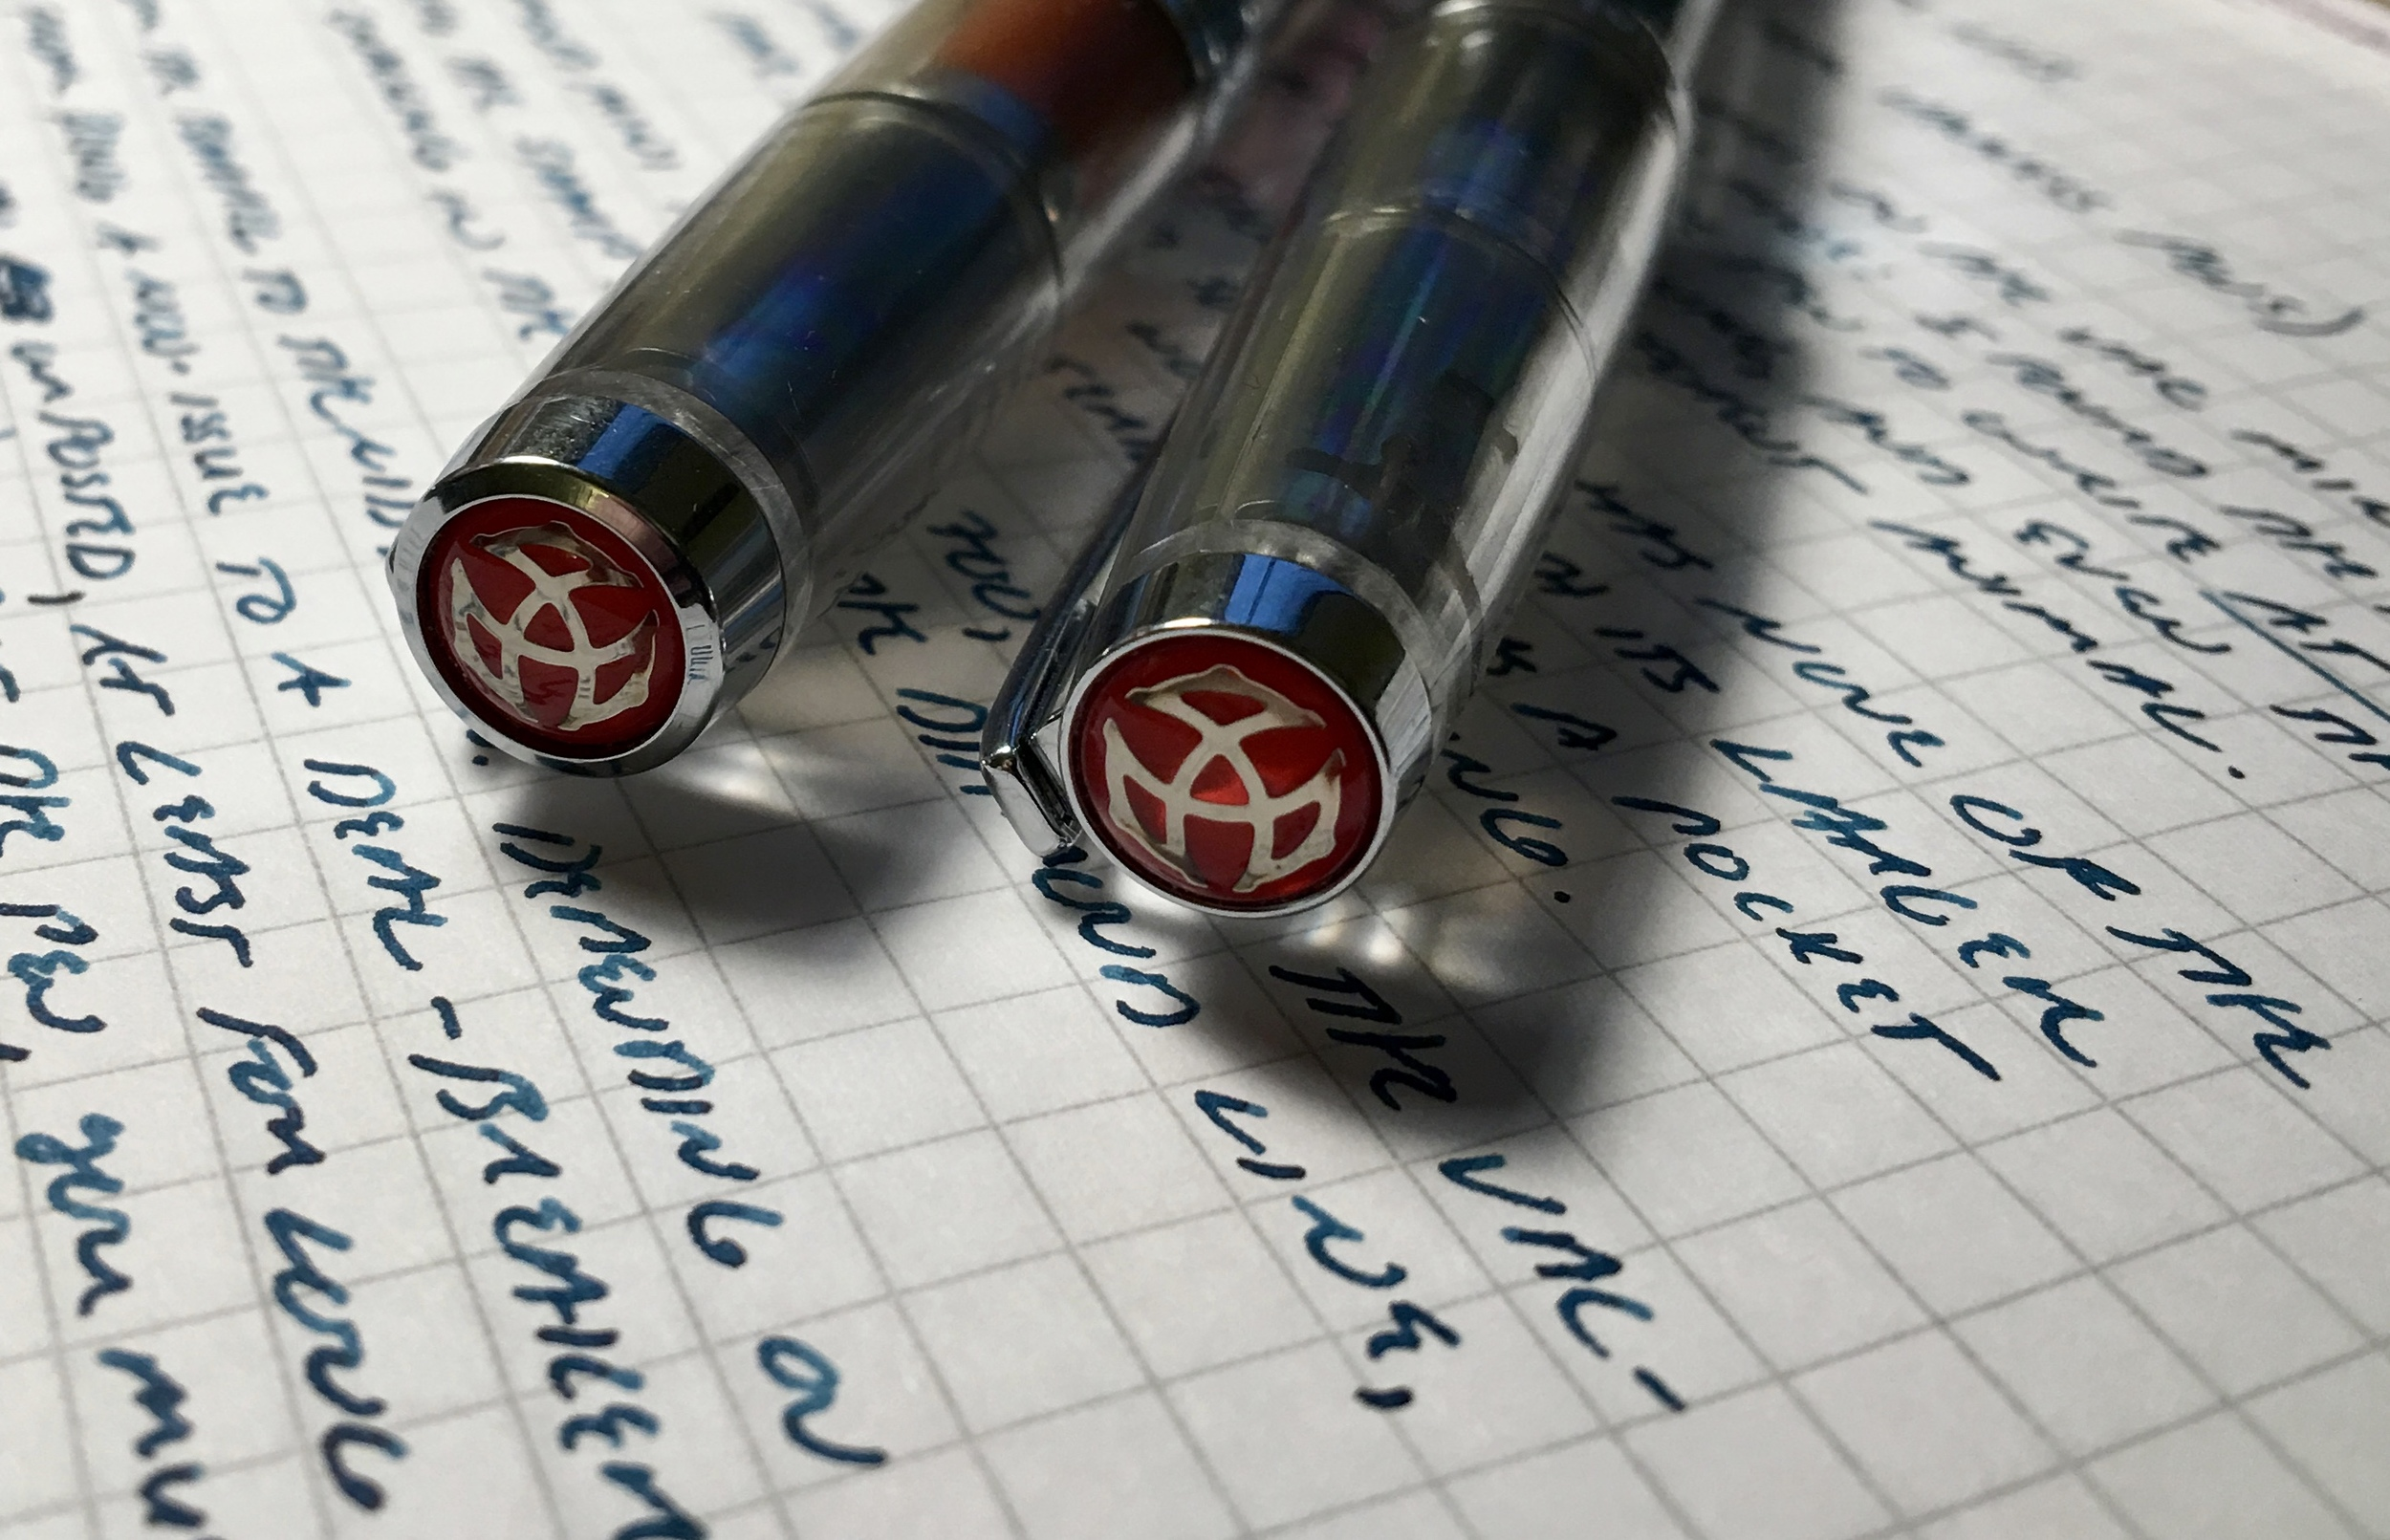 AND....it wouldn't be a TWSBI without the famous red logo on the top of the cap!